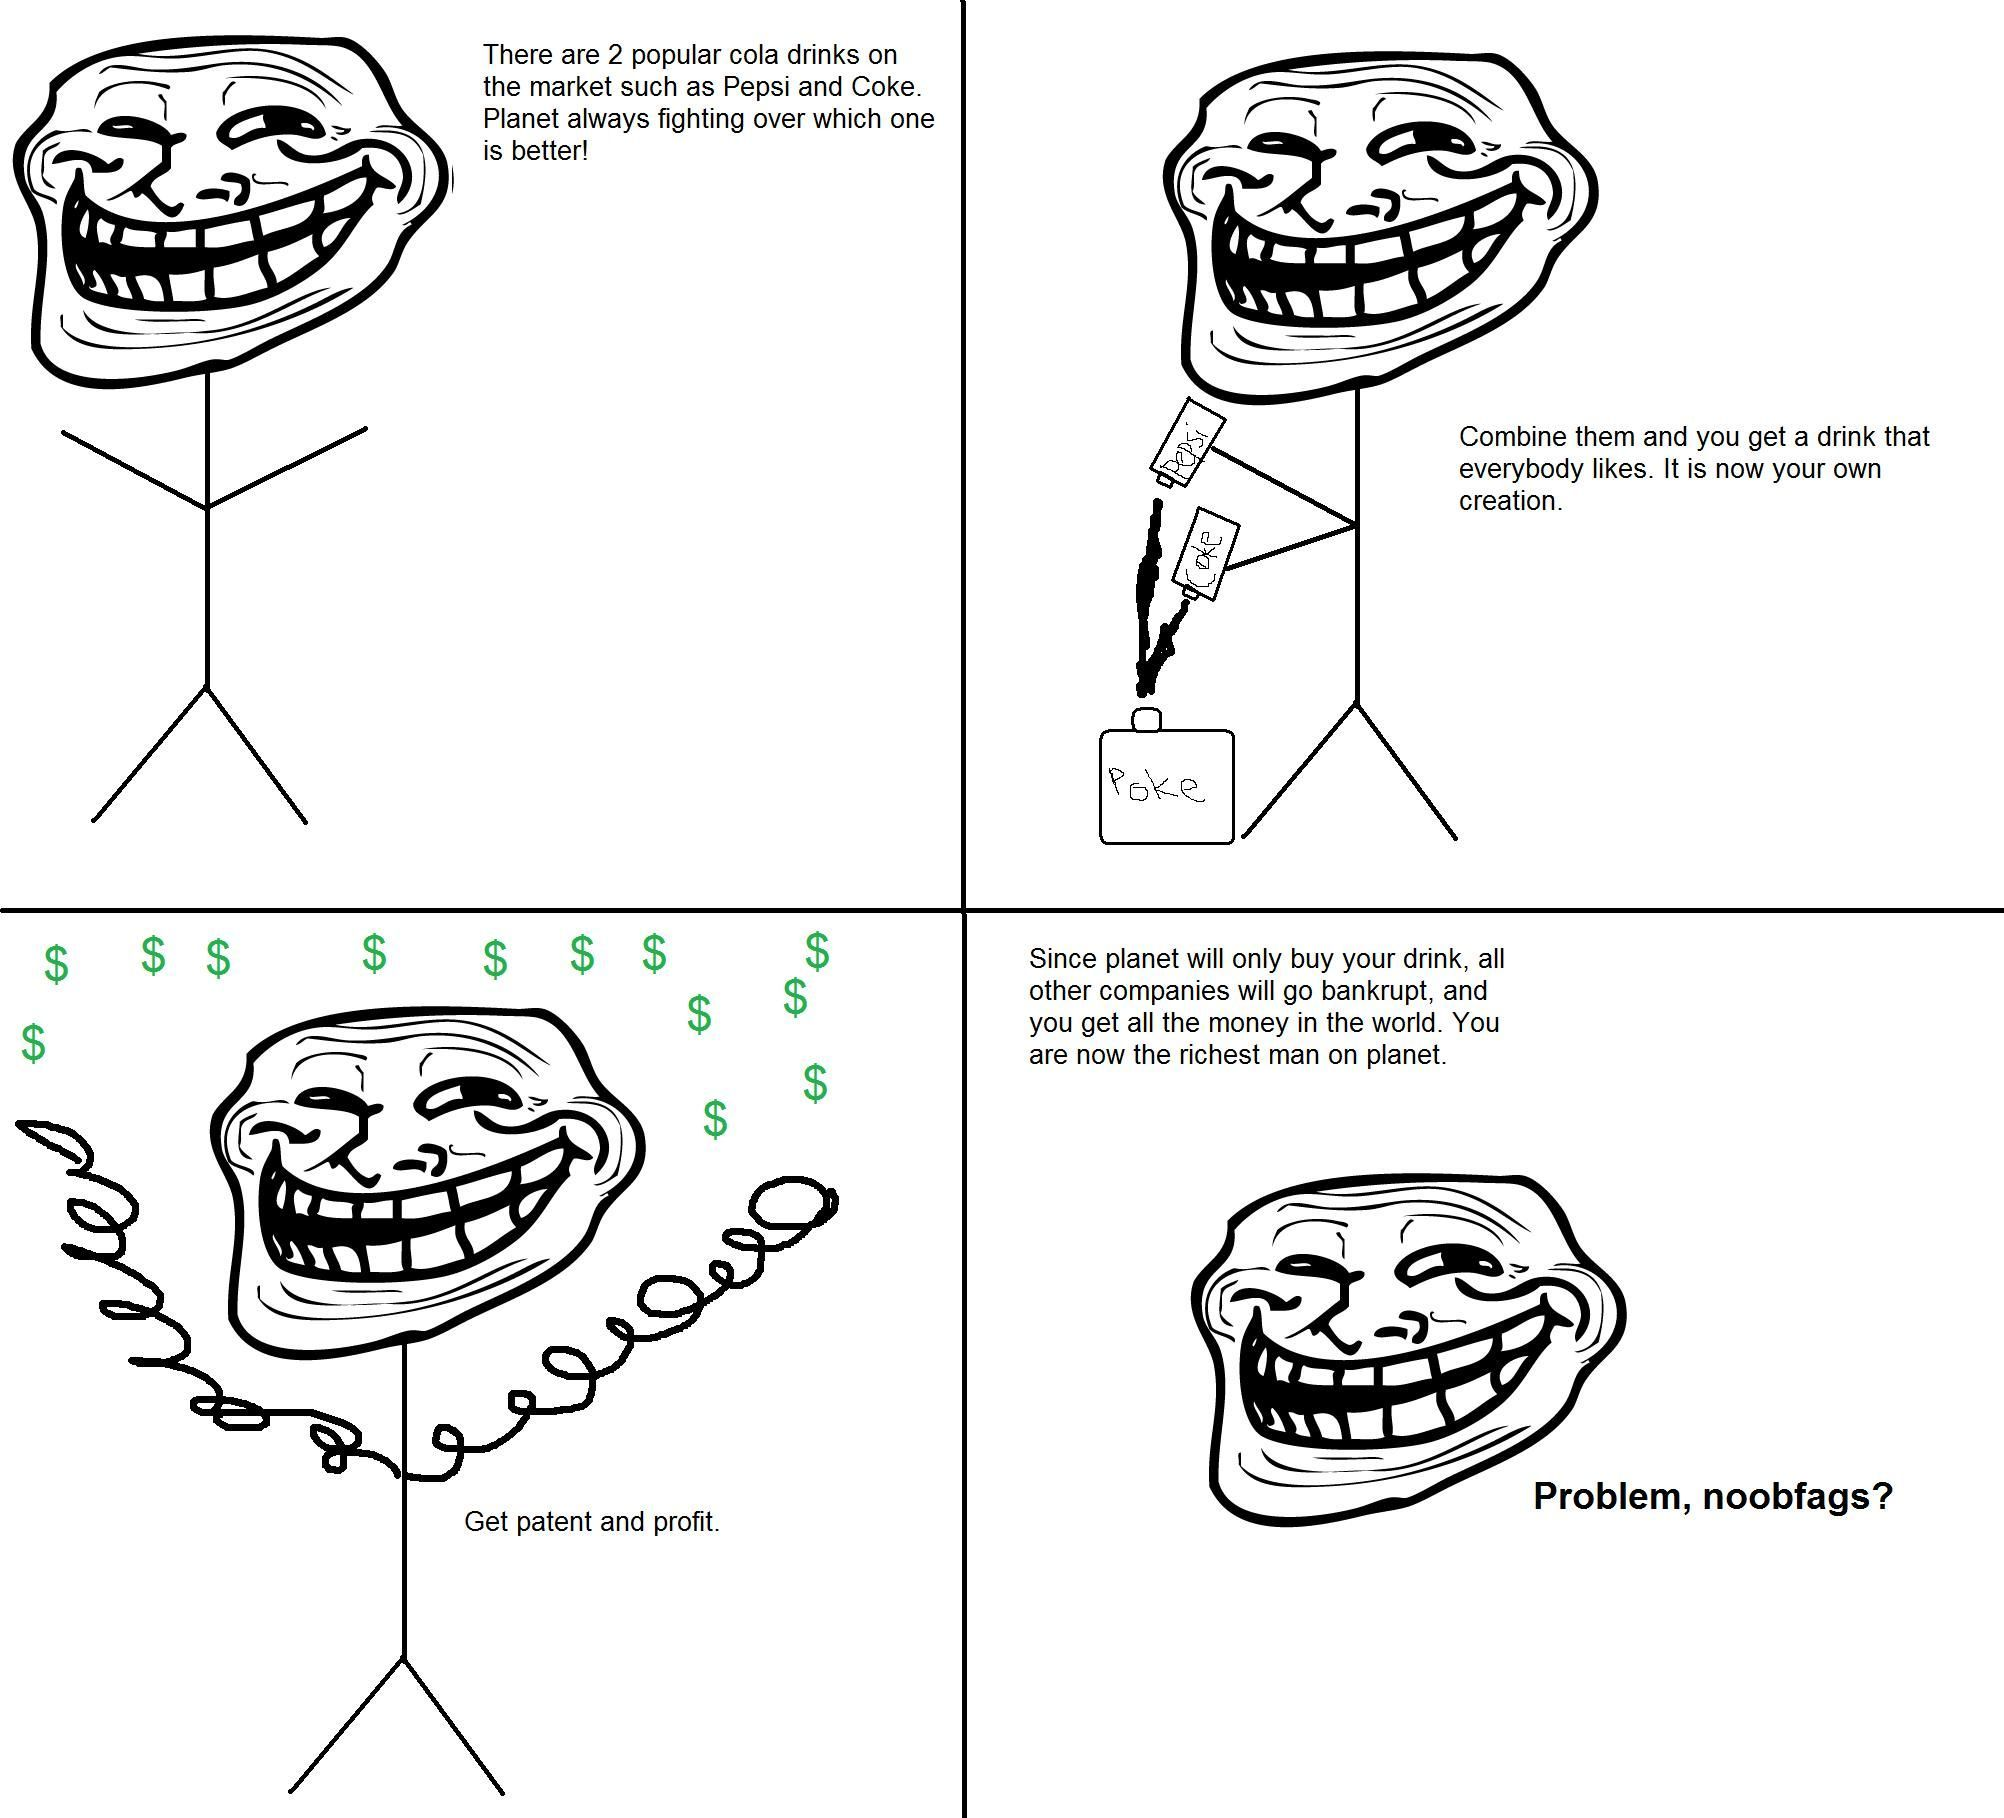 image 89851 troll science troll physics know your meme